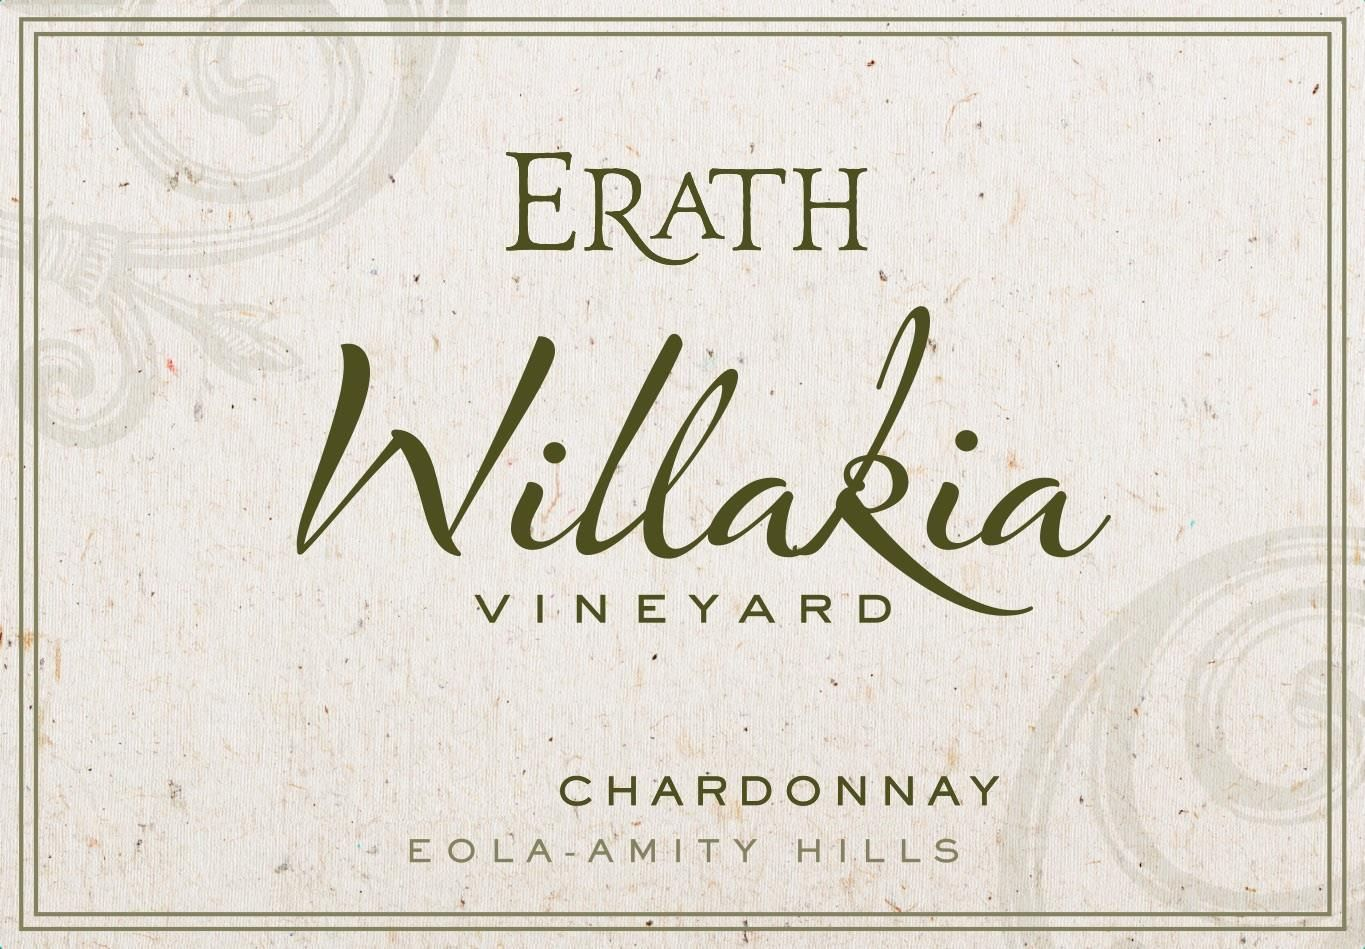 Erath Willakia Vineyard Chardonnay 2015